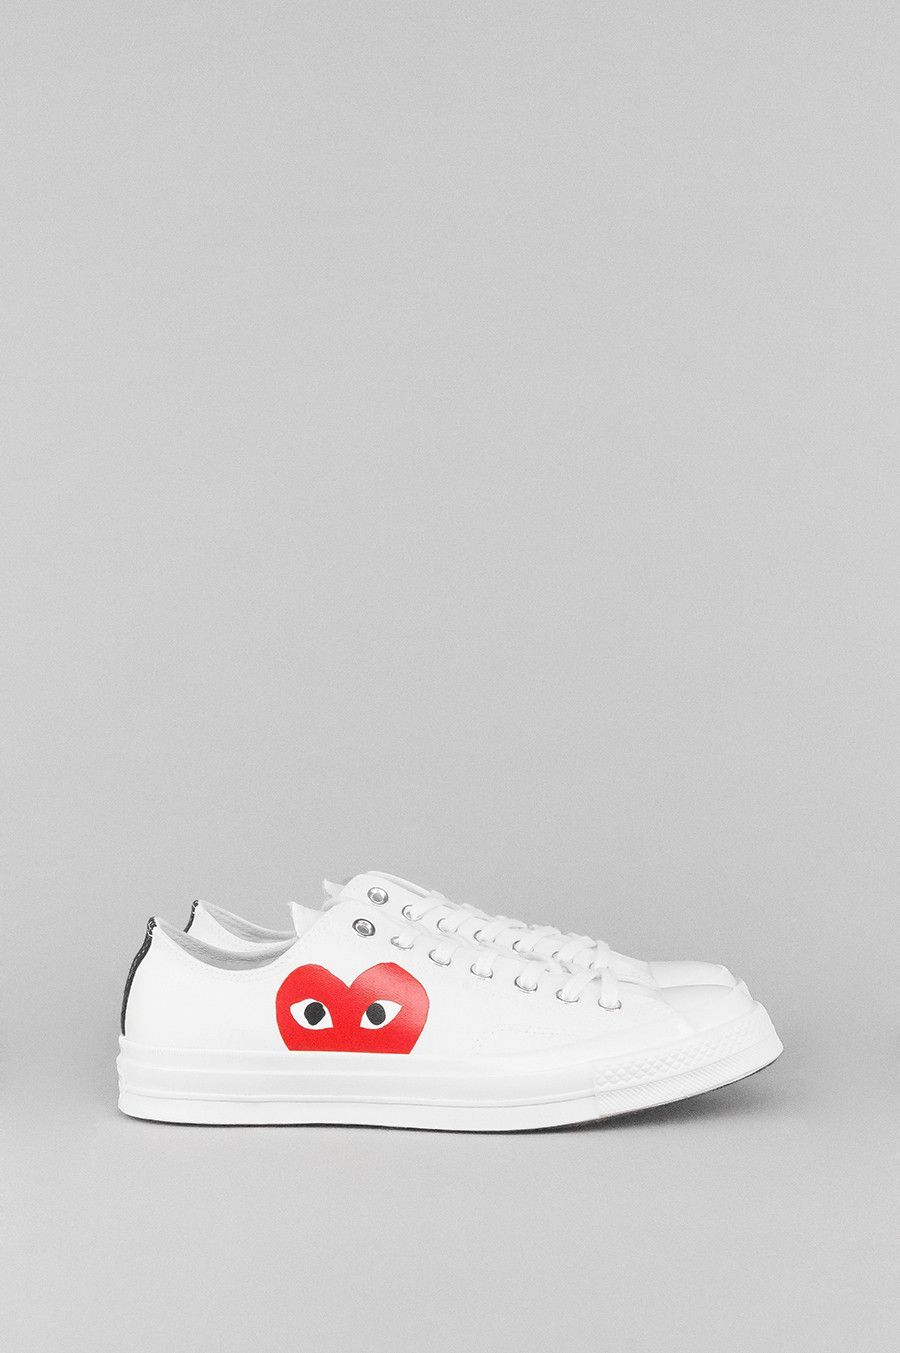 c66ce26a36b1 New York-based graphic artist Filip Pagowski and Japanese designer Rei  Kawakubo of Comme des Garçons collaborated once again with Converse to  recreate a ...